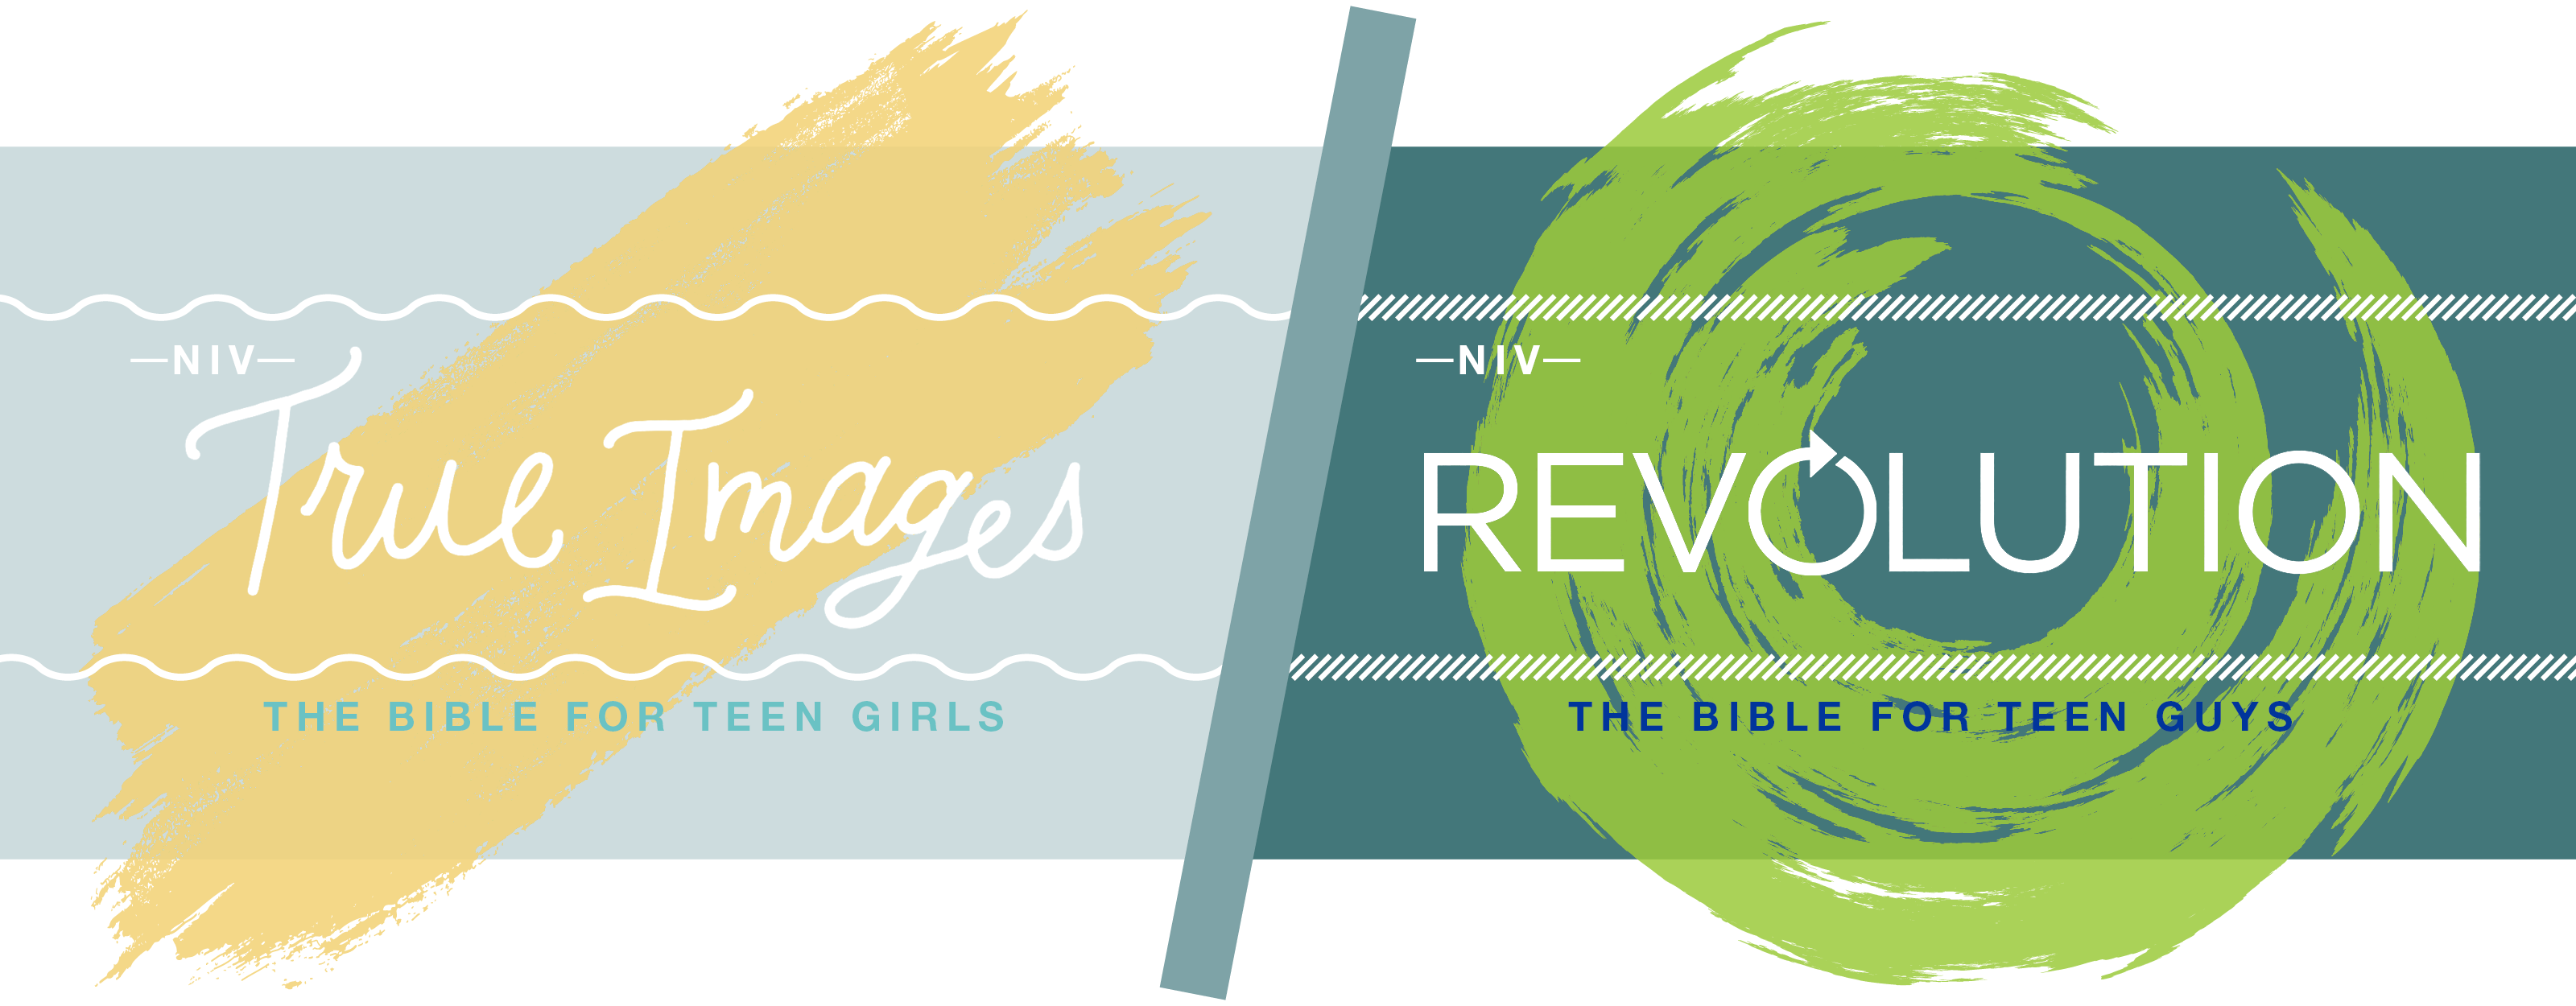 NIV Bibles for Teens: True Images & Revolution - Marketing Pages